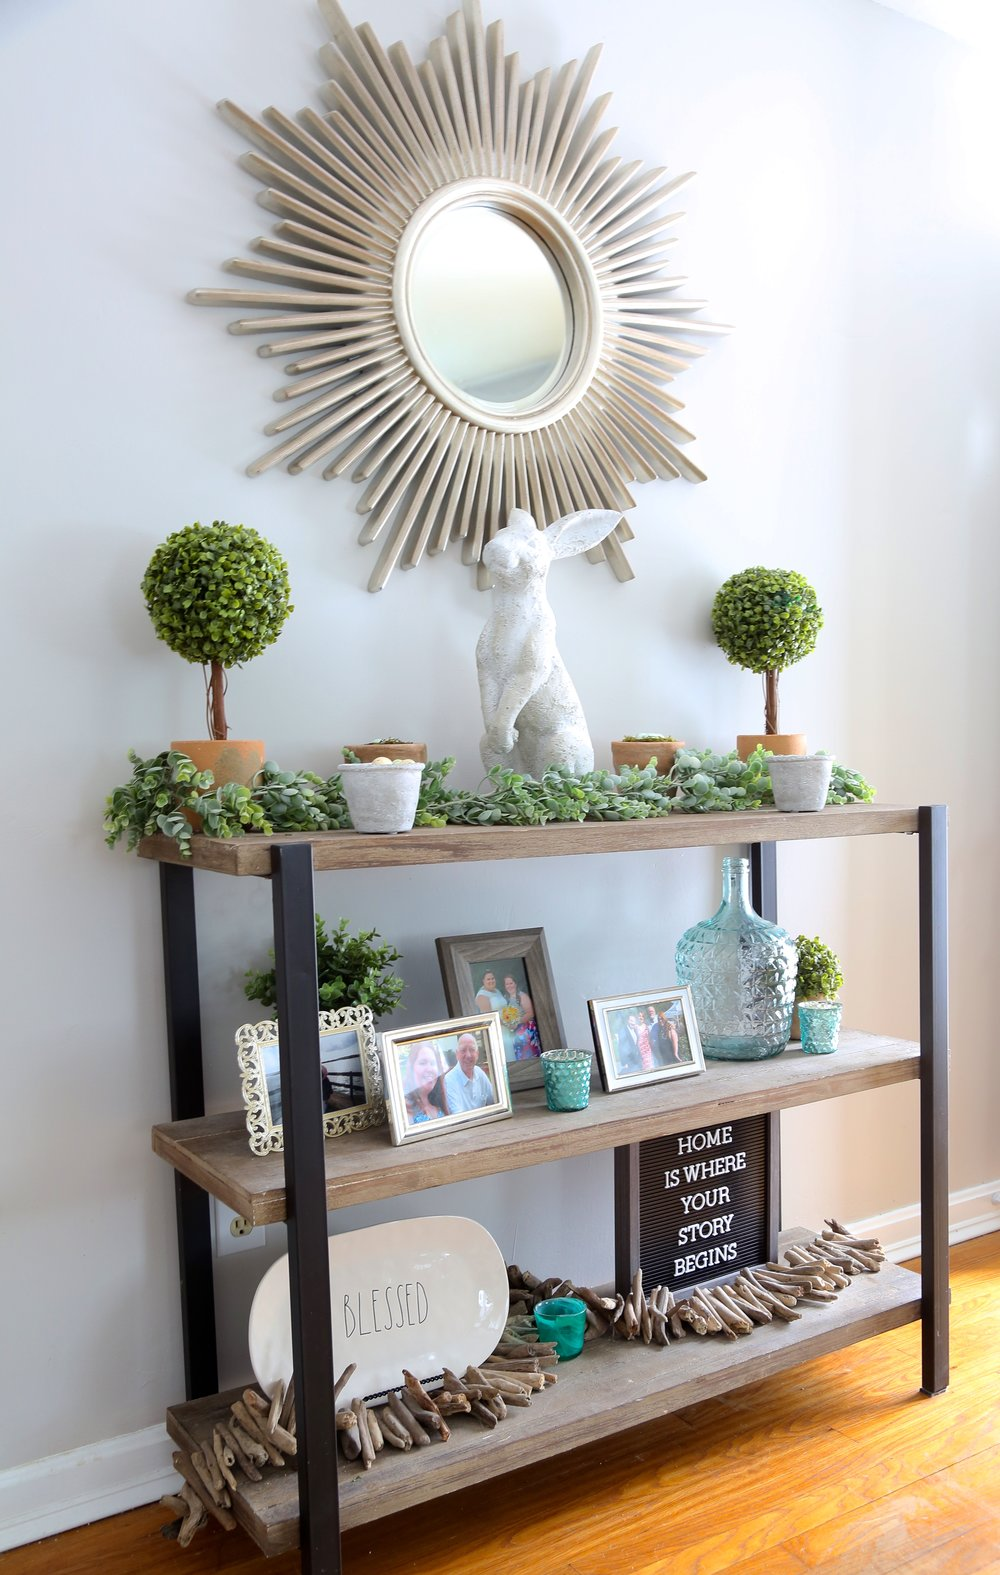 I Love Decorating My Home For Spring And Easter. Living In New England We  Dream All Winter Long About Spring. I Was Actually Happy That Easter Was  Early ...